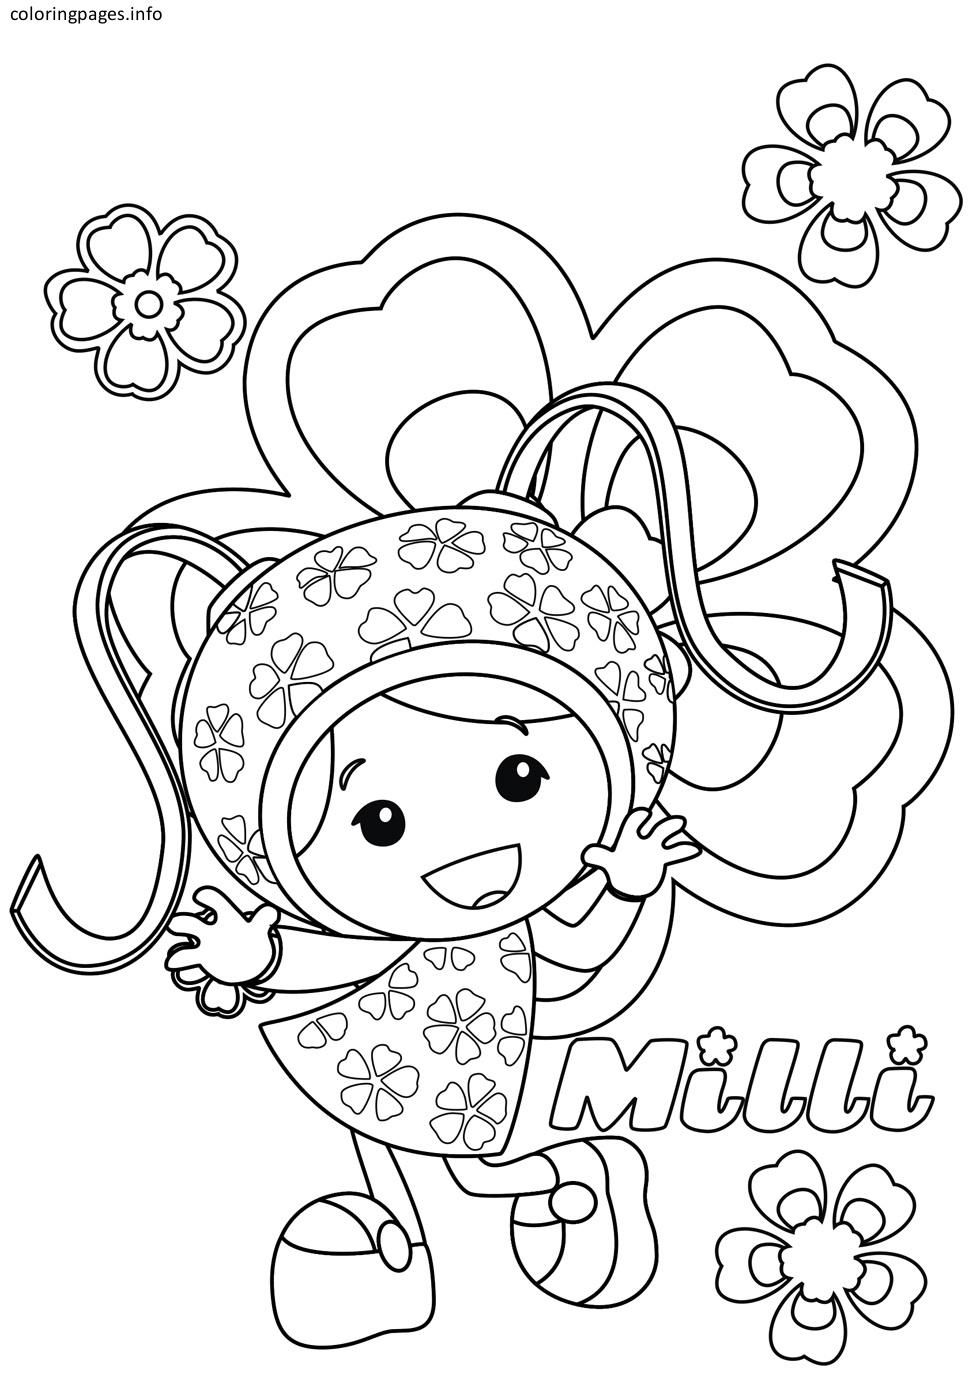 team umizoomi milli coloring pages DIY and crafts